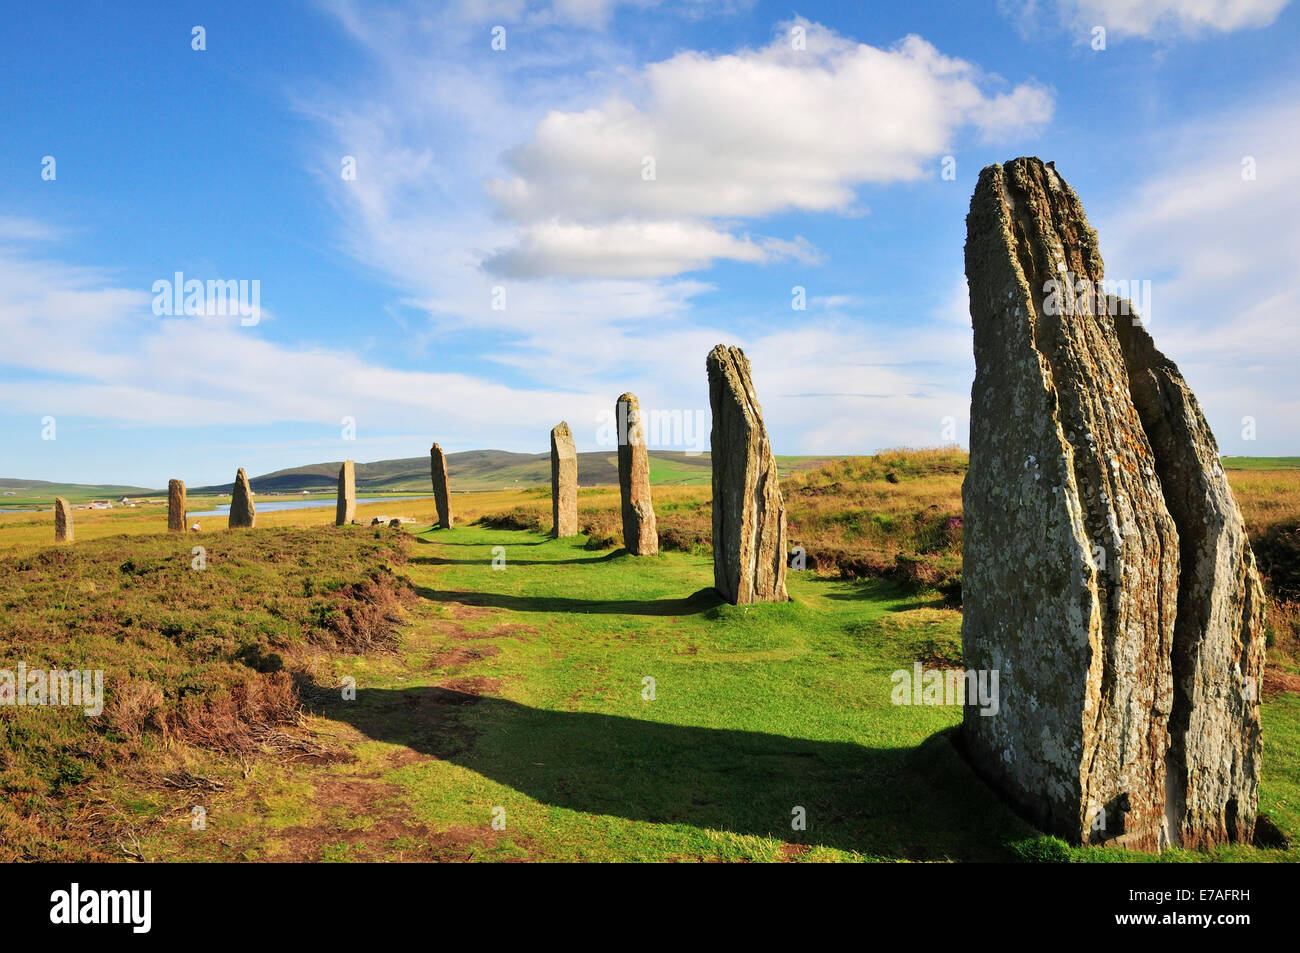 Ring of Brodgar, neolithic henge and stone circle, Mainland, Orkney, Scotland, United Kingdom - Stock Image